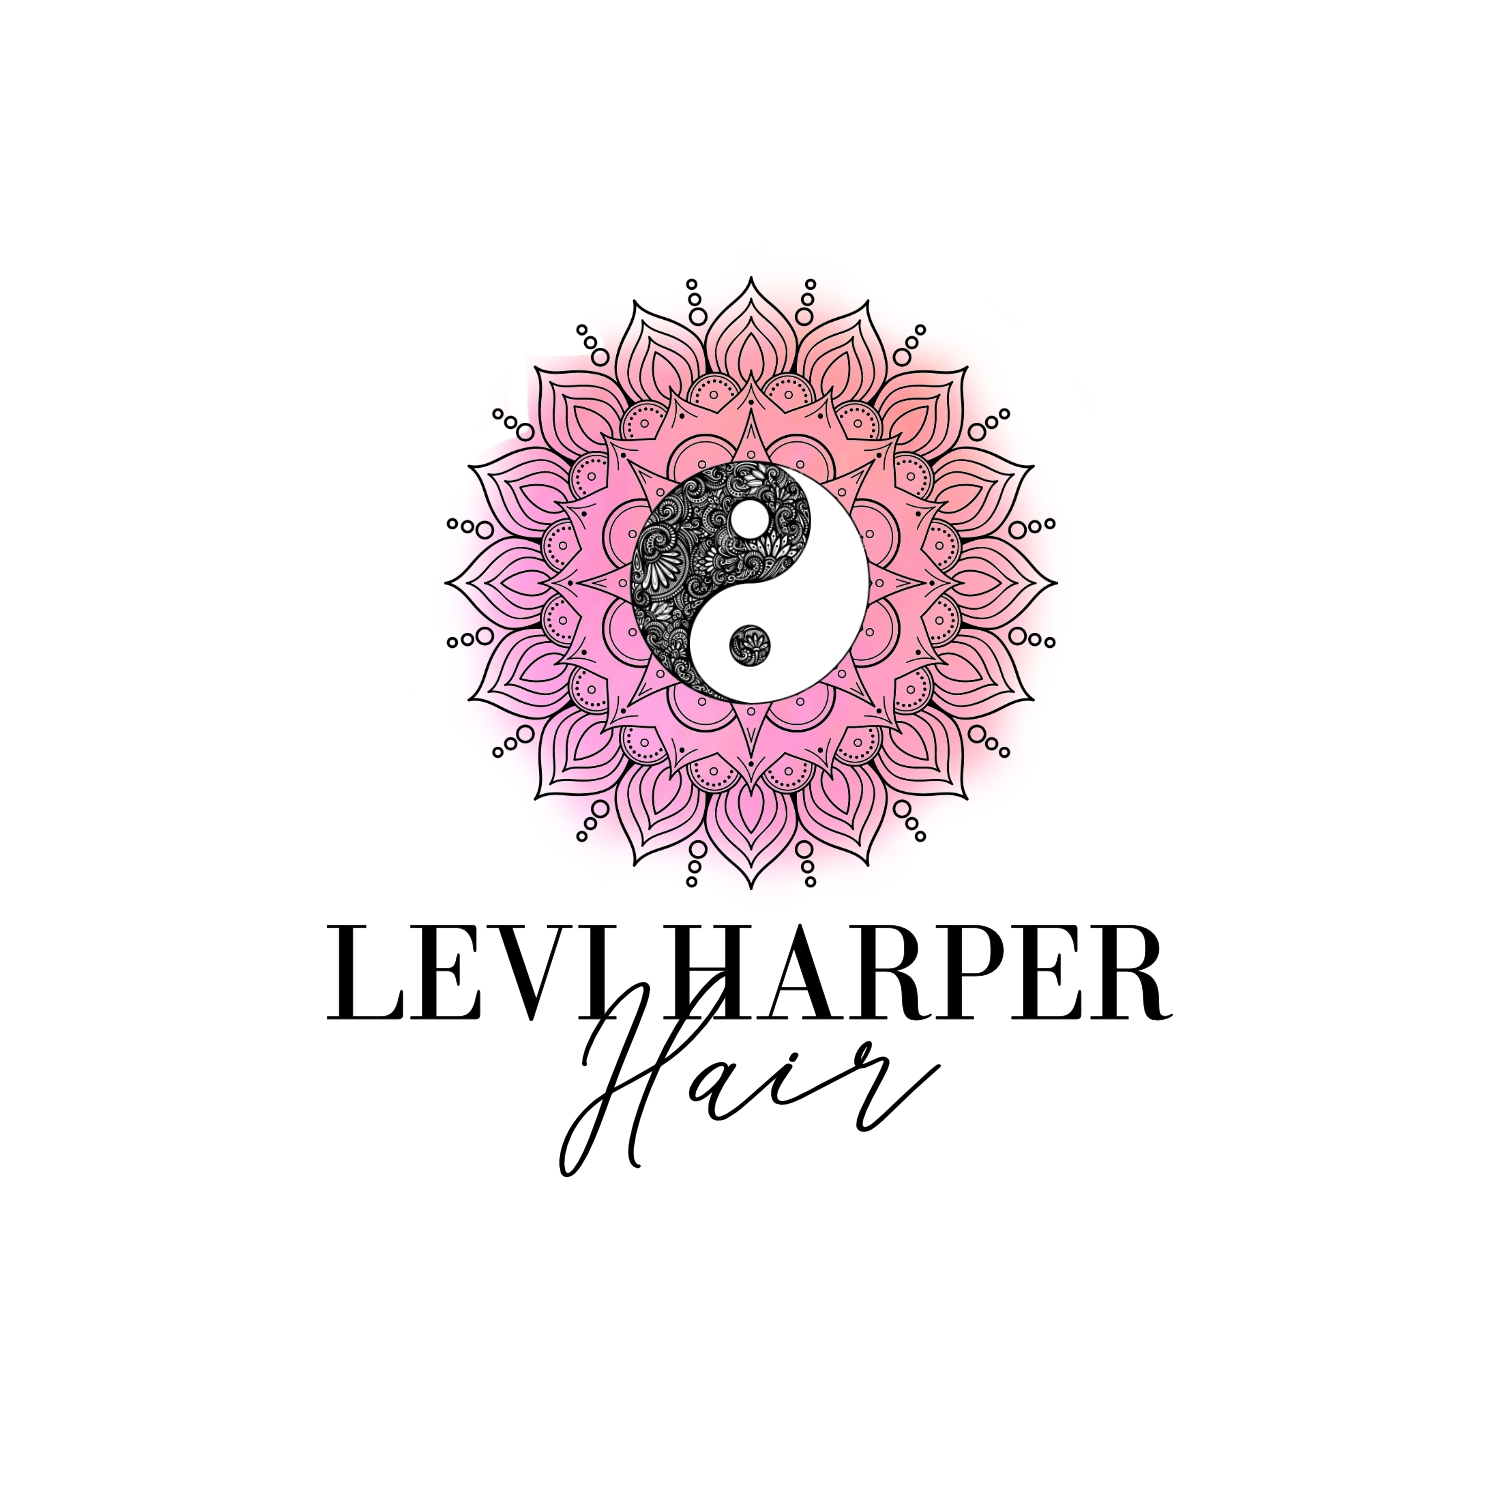 Levi Harper Hair